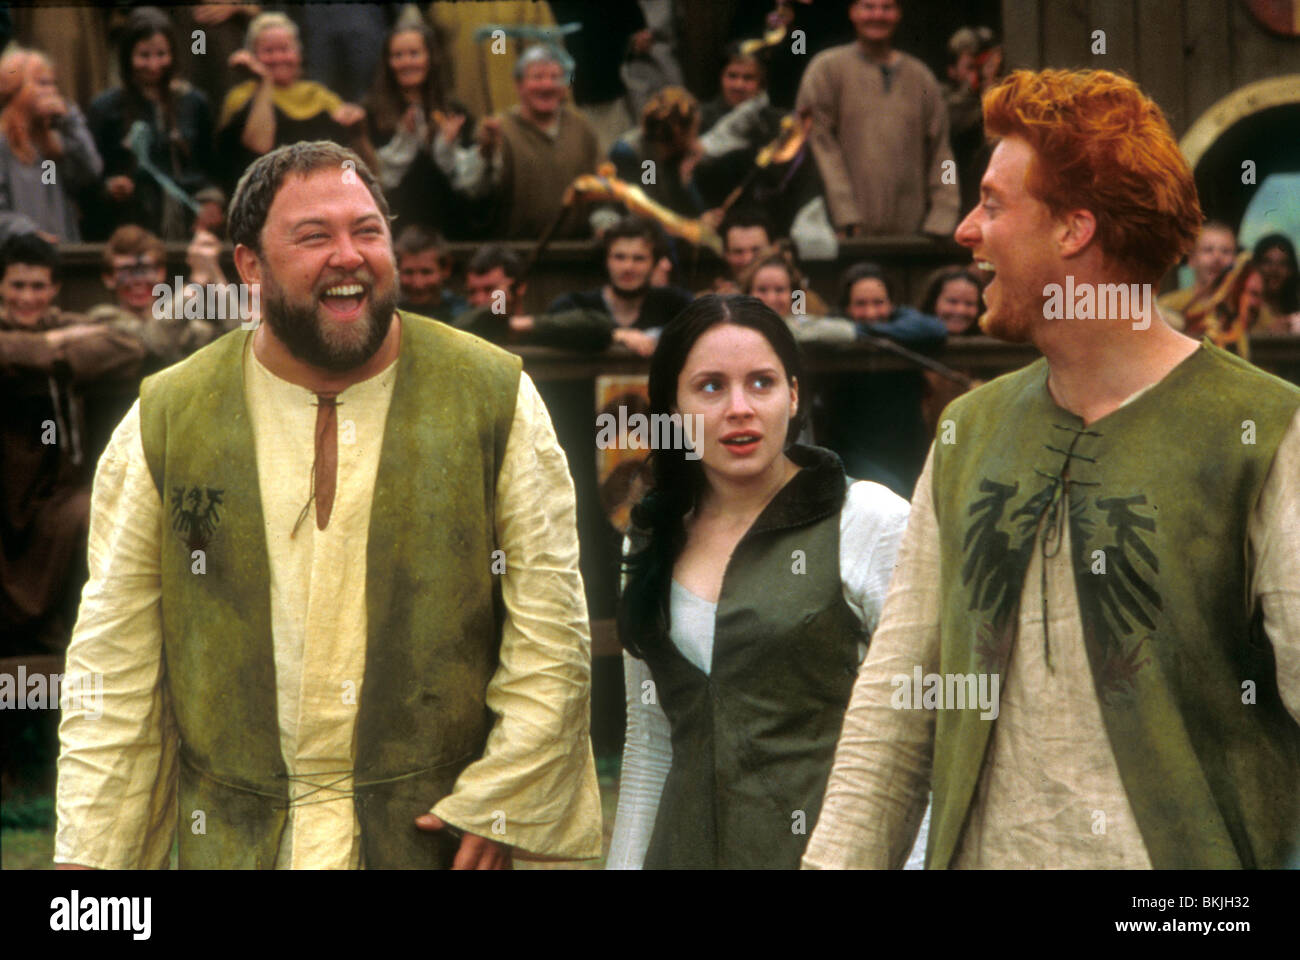 A KNIGHT'S TALE (2001) MARK ADDY, LAURA FRASER, ALAN TUDYK ...